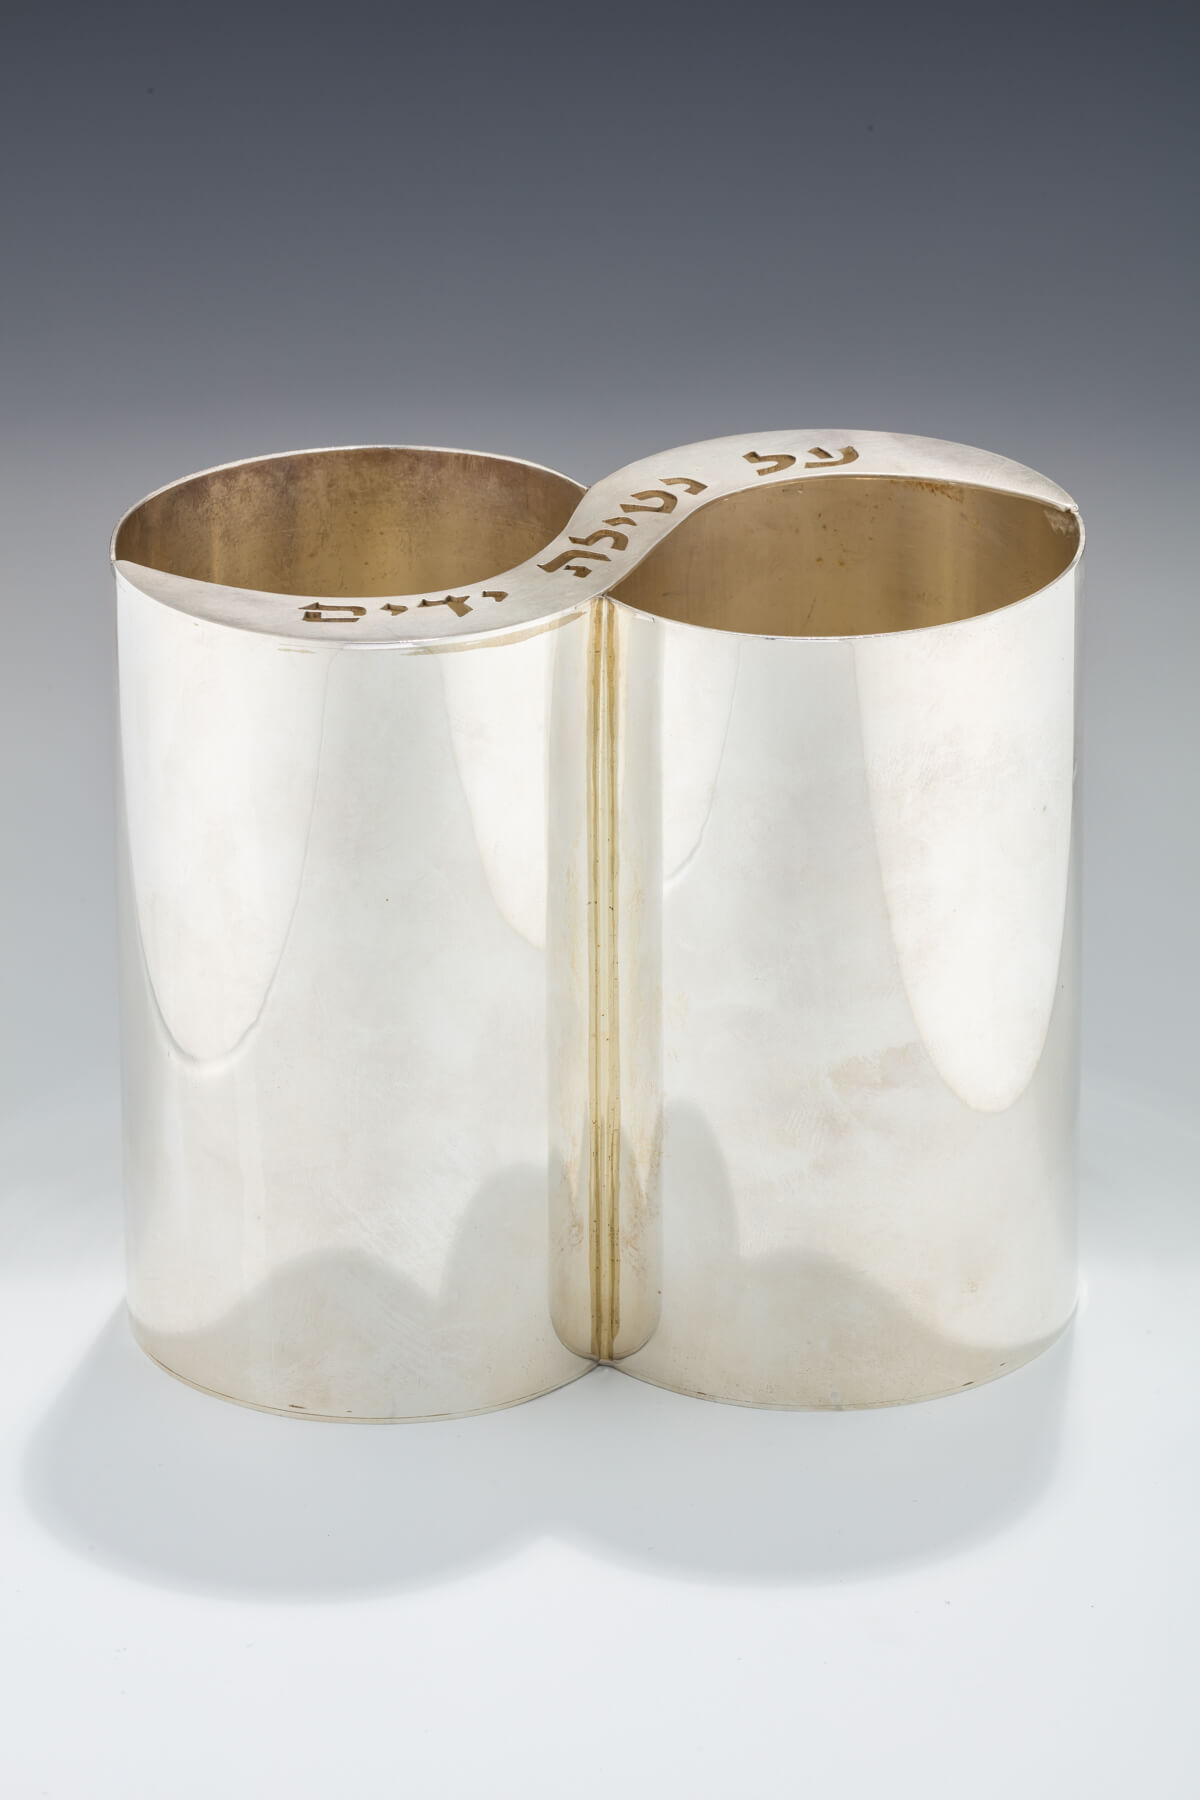 136. A Sterling Silver Washing Cup by Rafi Landau